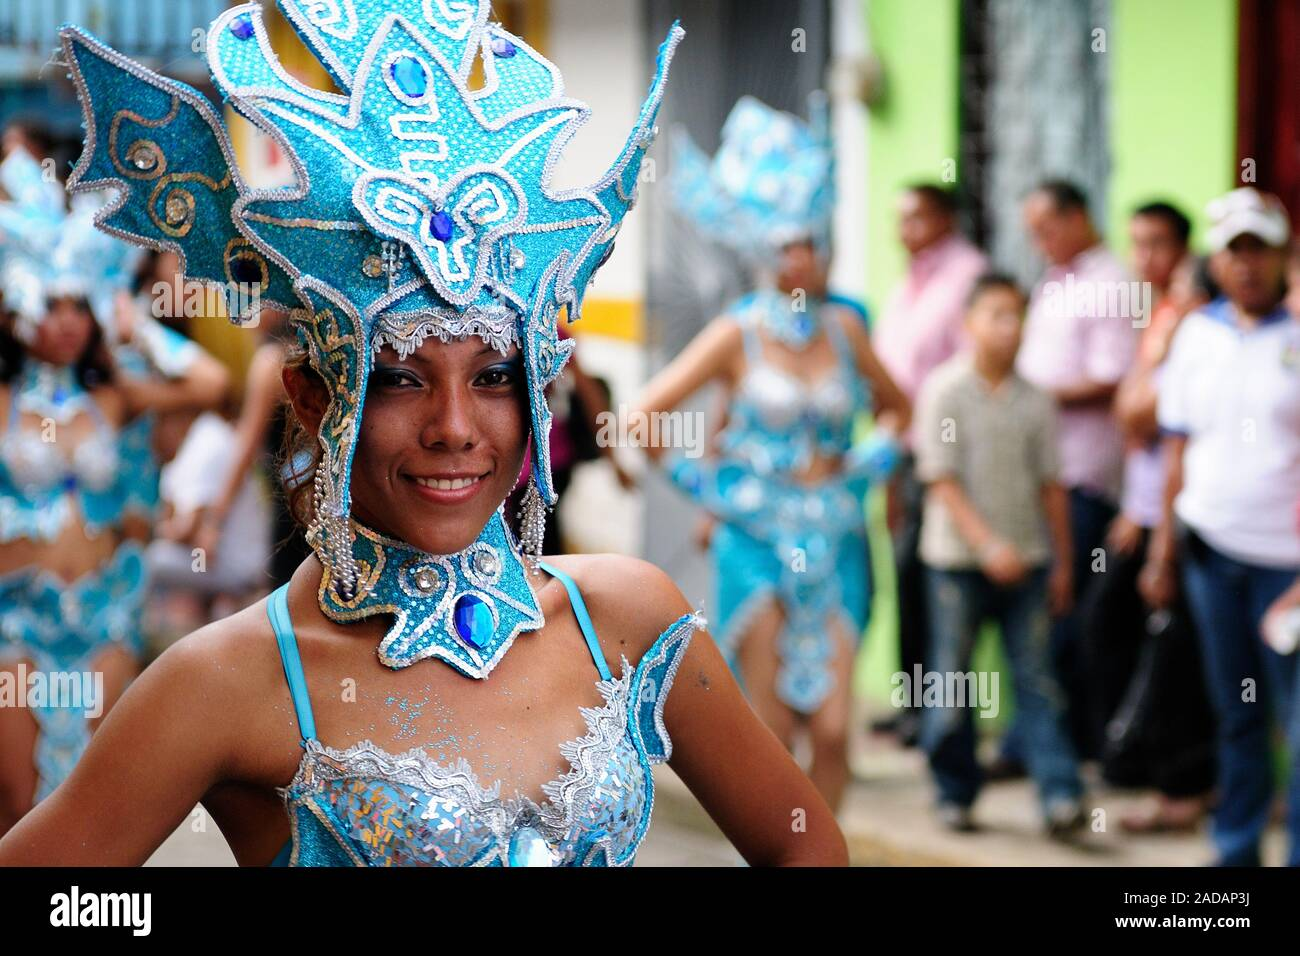 San Juan, Nicaragua, Central America - 24 November 2012: Portrait of the participant in the parade in the city San Juan of Nicaragua Stock Photo